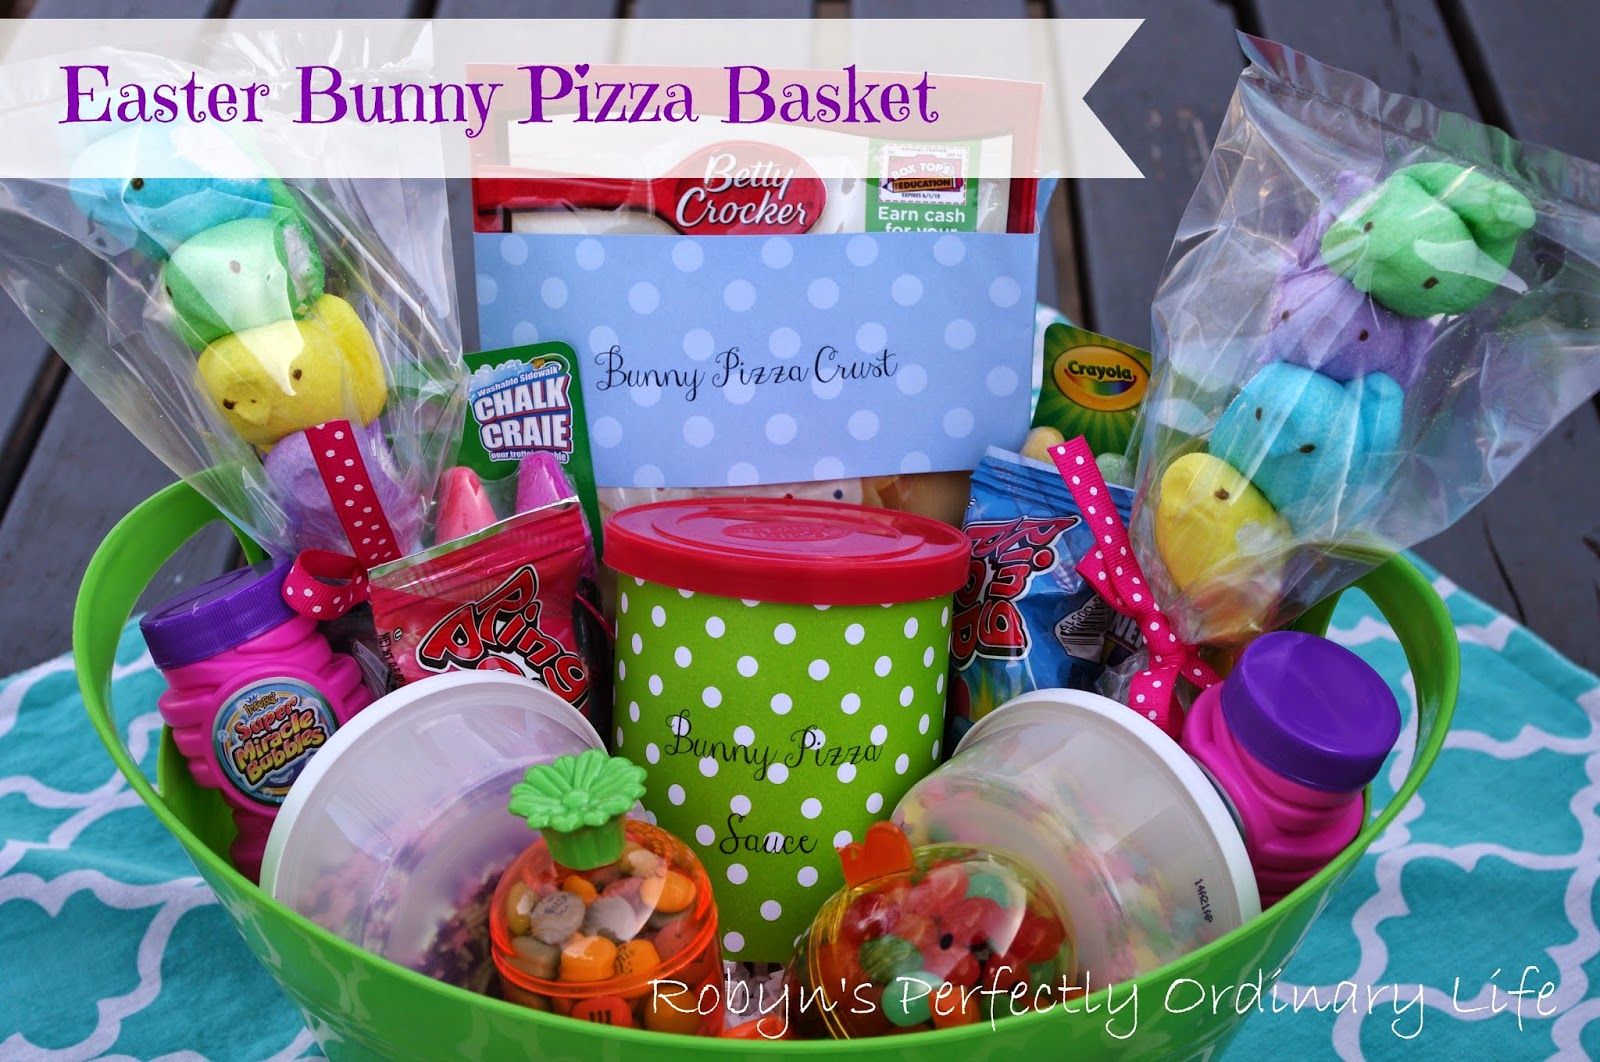 Robyn's Perfectly Ordinary Life: Easter Bunny Cookie Pizza Basket